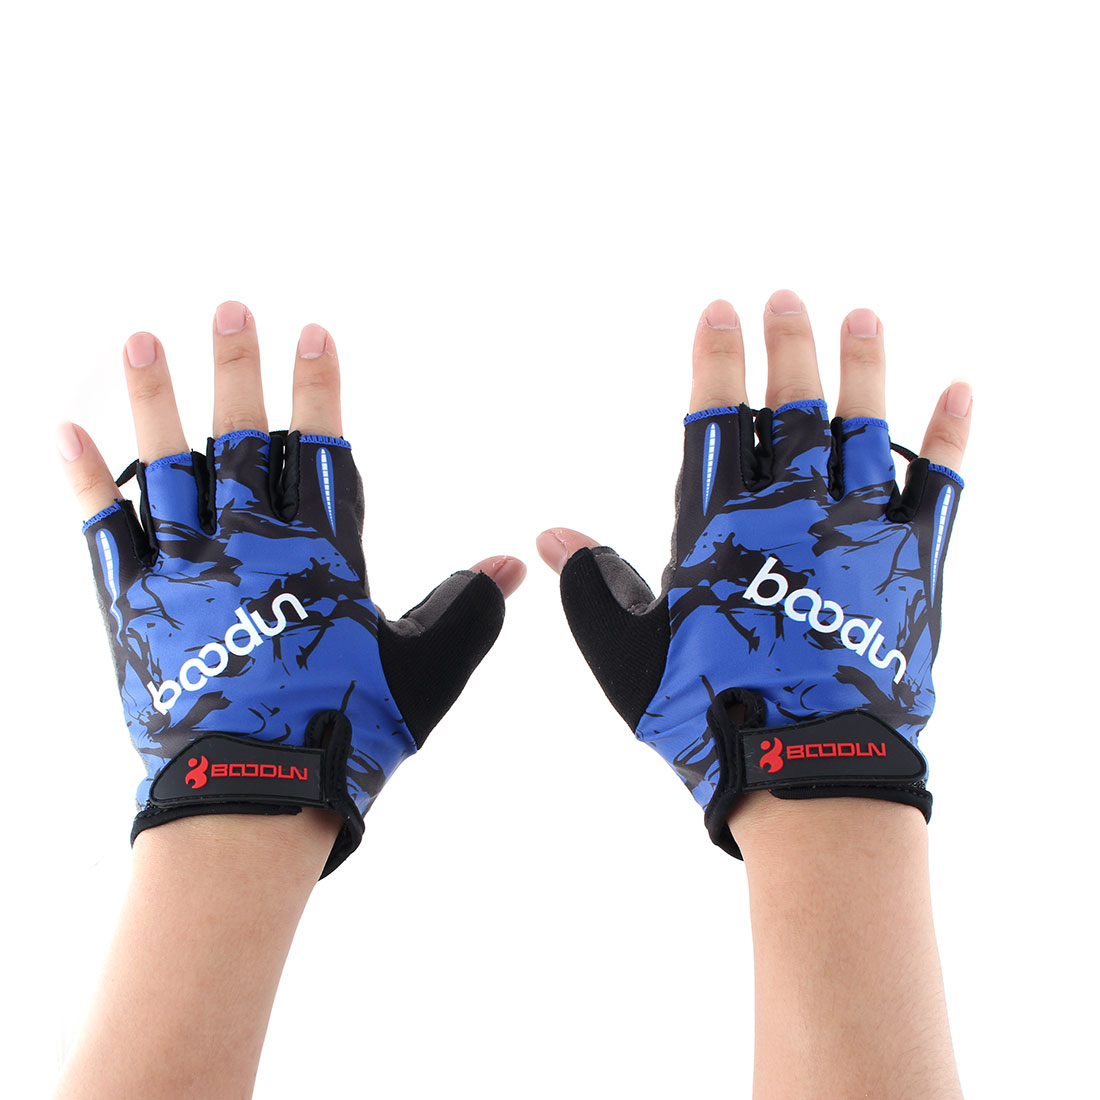 BOODUN Authorized Polyester Exercise Sports Gym Lifting Training Bodybuilding Protector Half Finger Fitness Gloves Blue M Pair